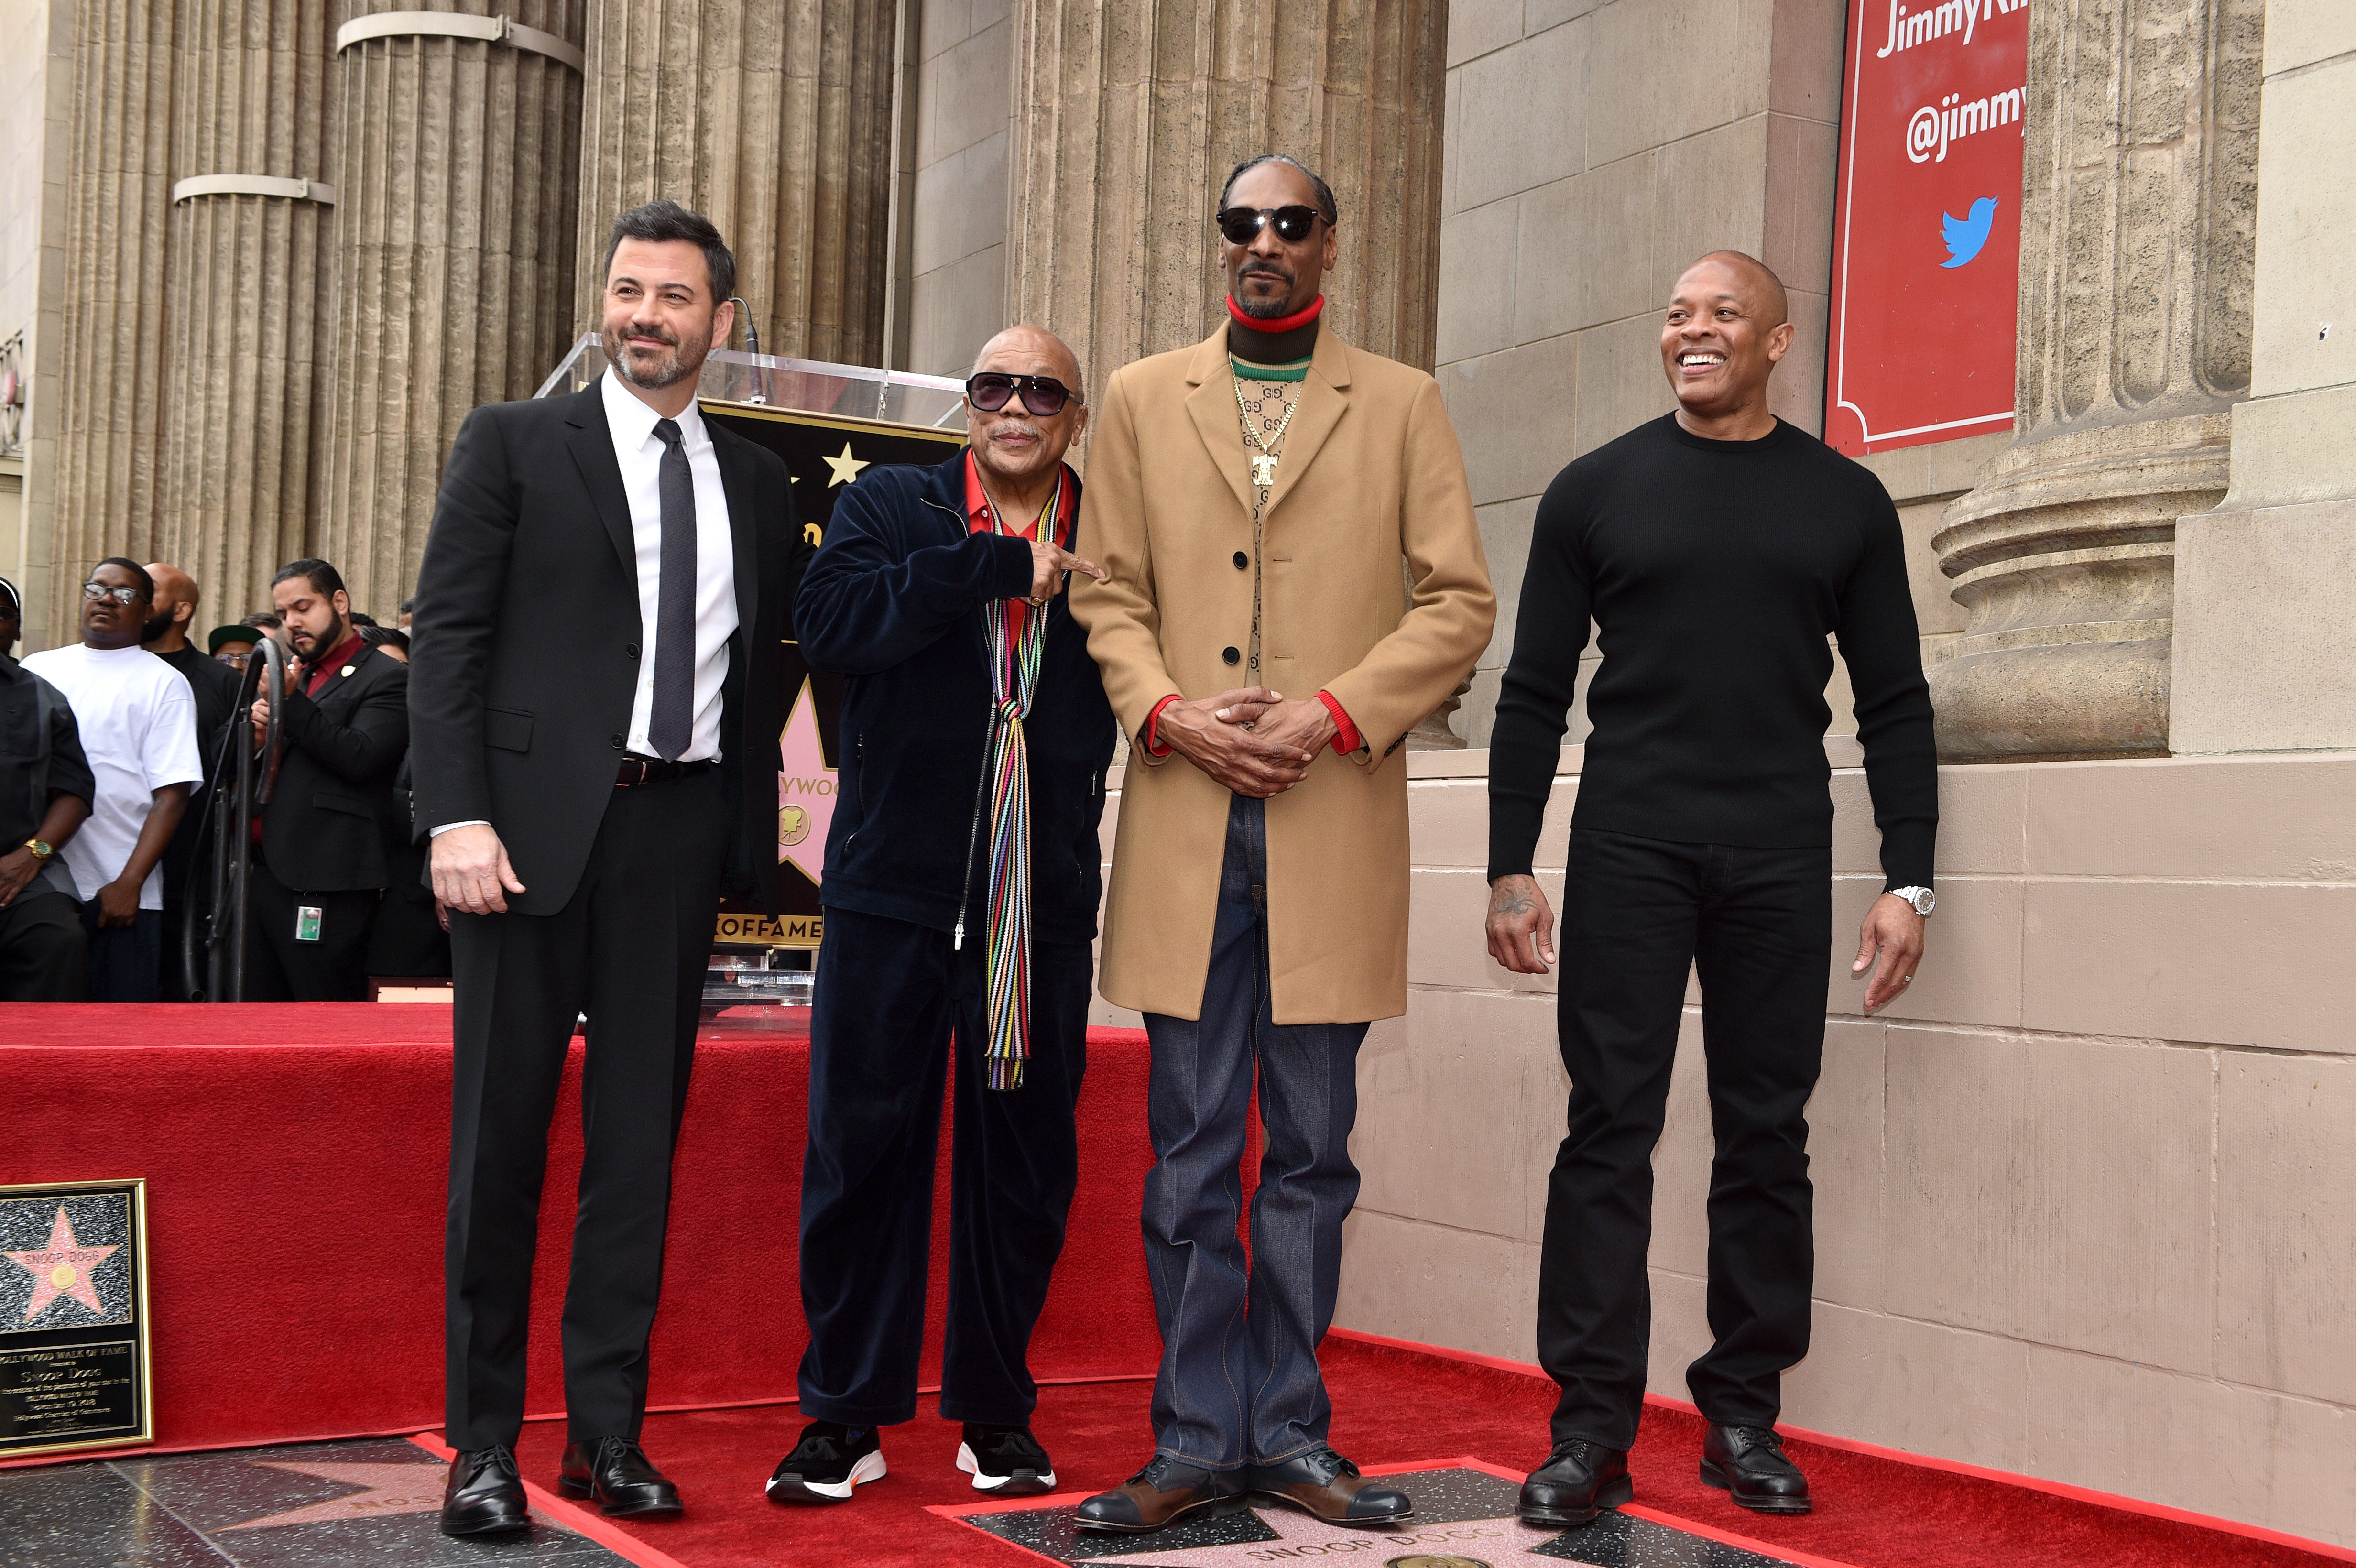 Snoop Dogg, Dr. Dre, Jimmy Kimmel, Quincy Jones / Fotó: Northfoto